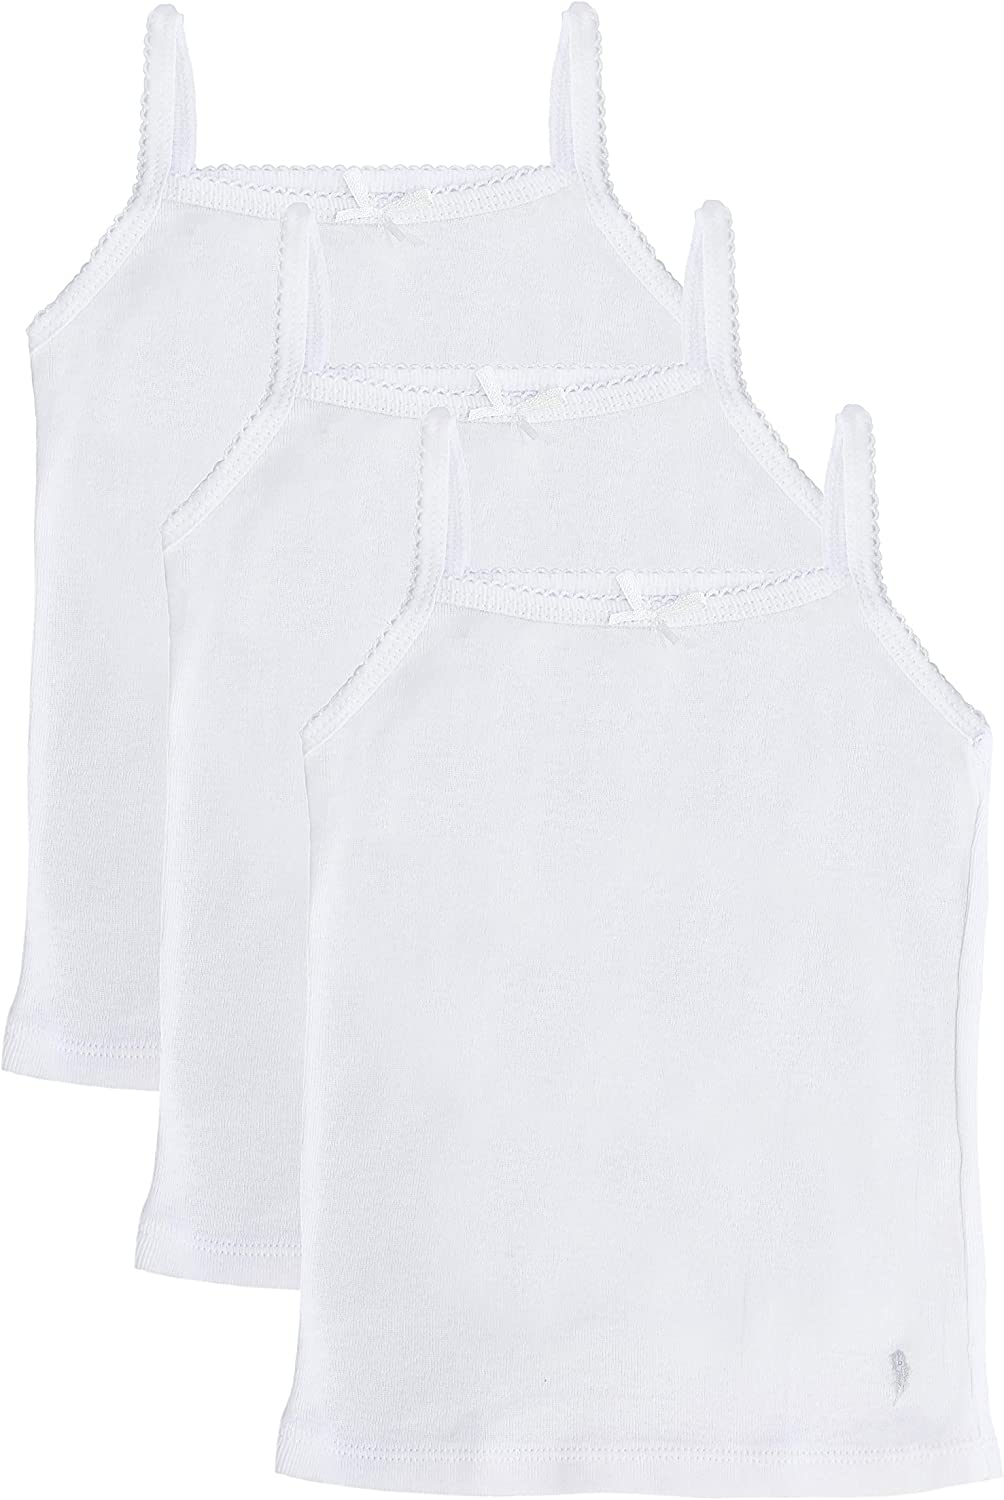 Feathers Girls Solid White Snug Fit Tagless Cami Vest - 100% Cotton Super Soft Undershirts (3/Pack)